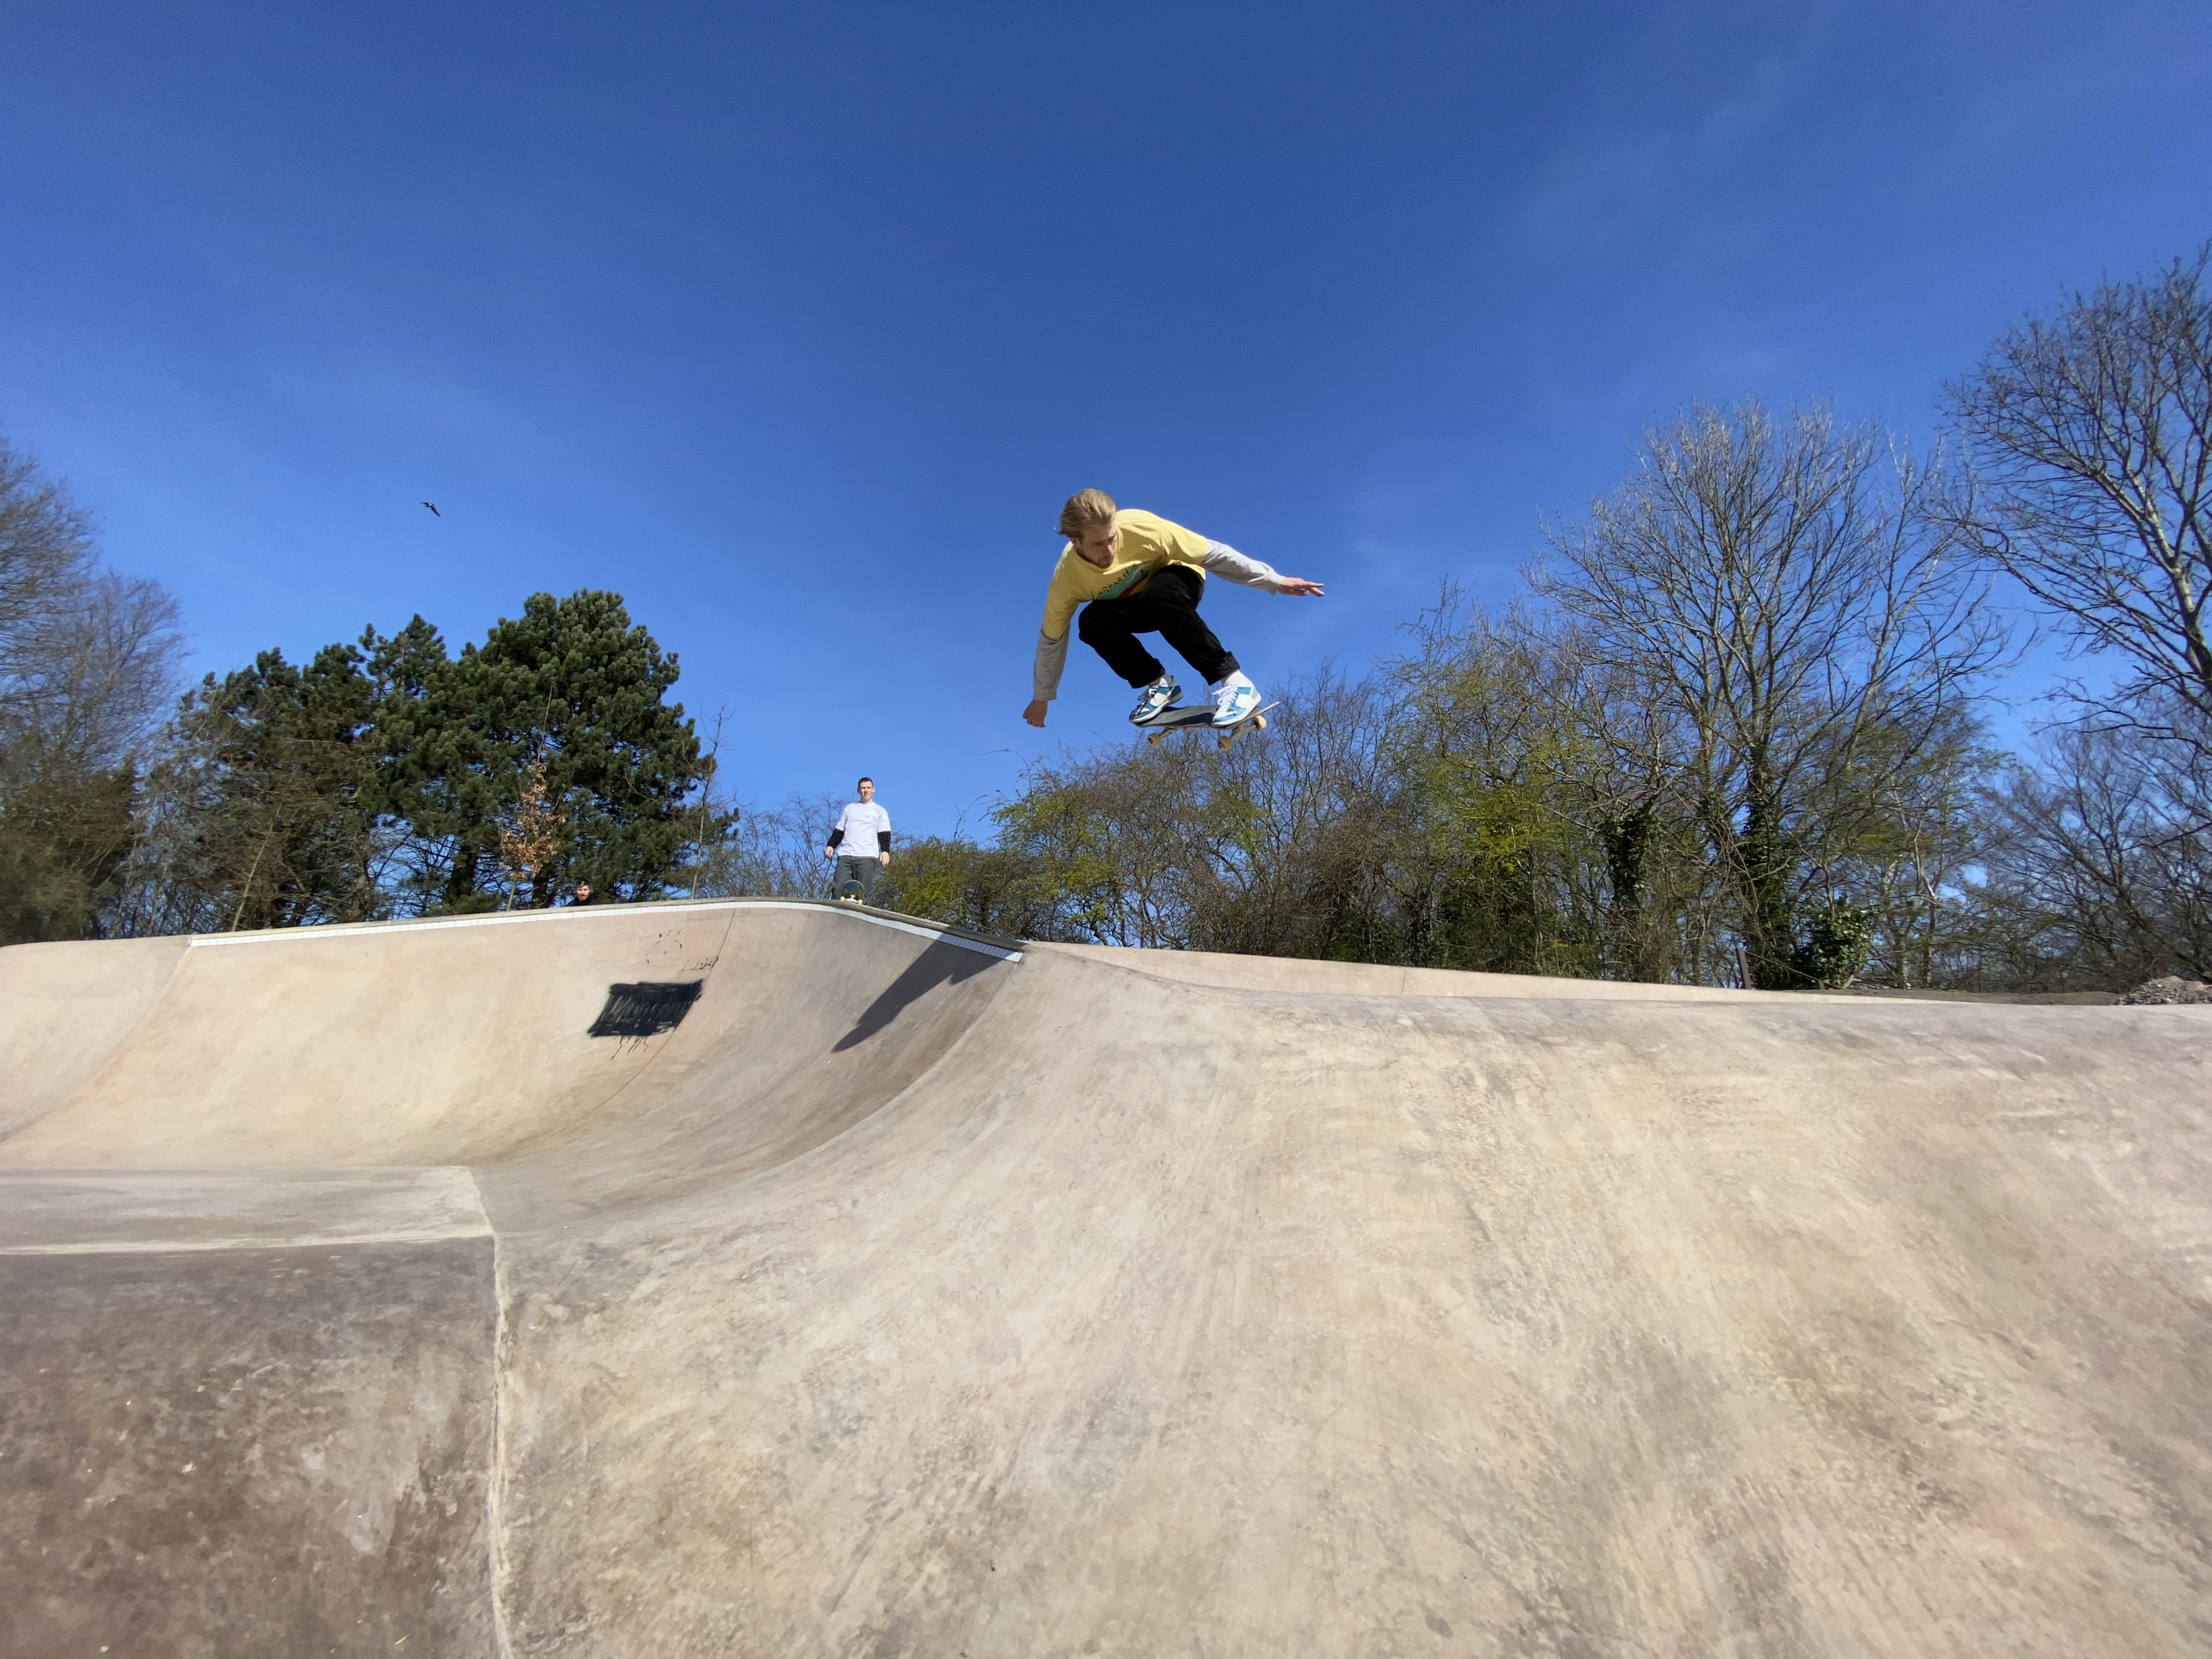 went to the new park in Amager and saw Jonas kill this park!!